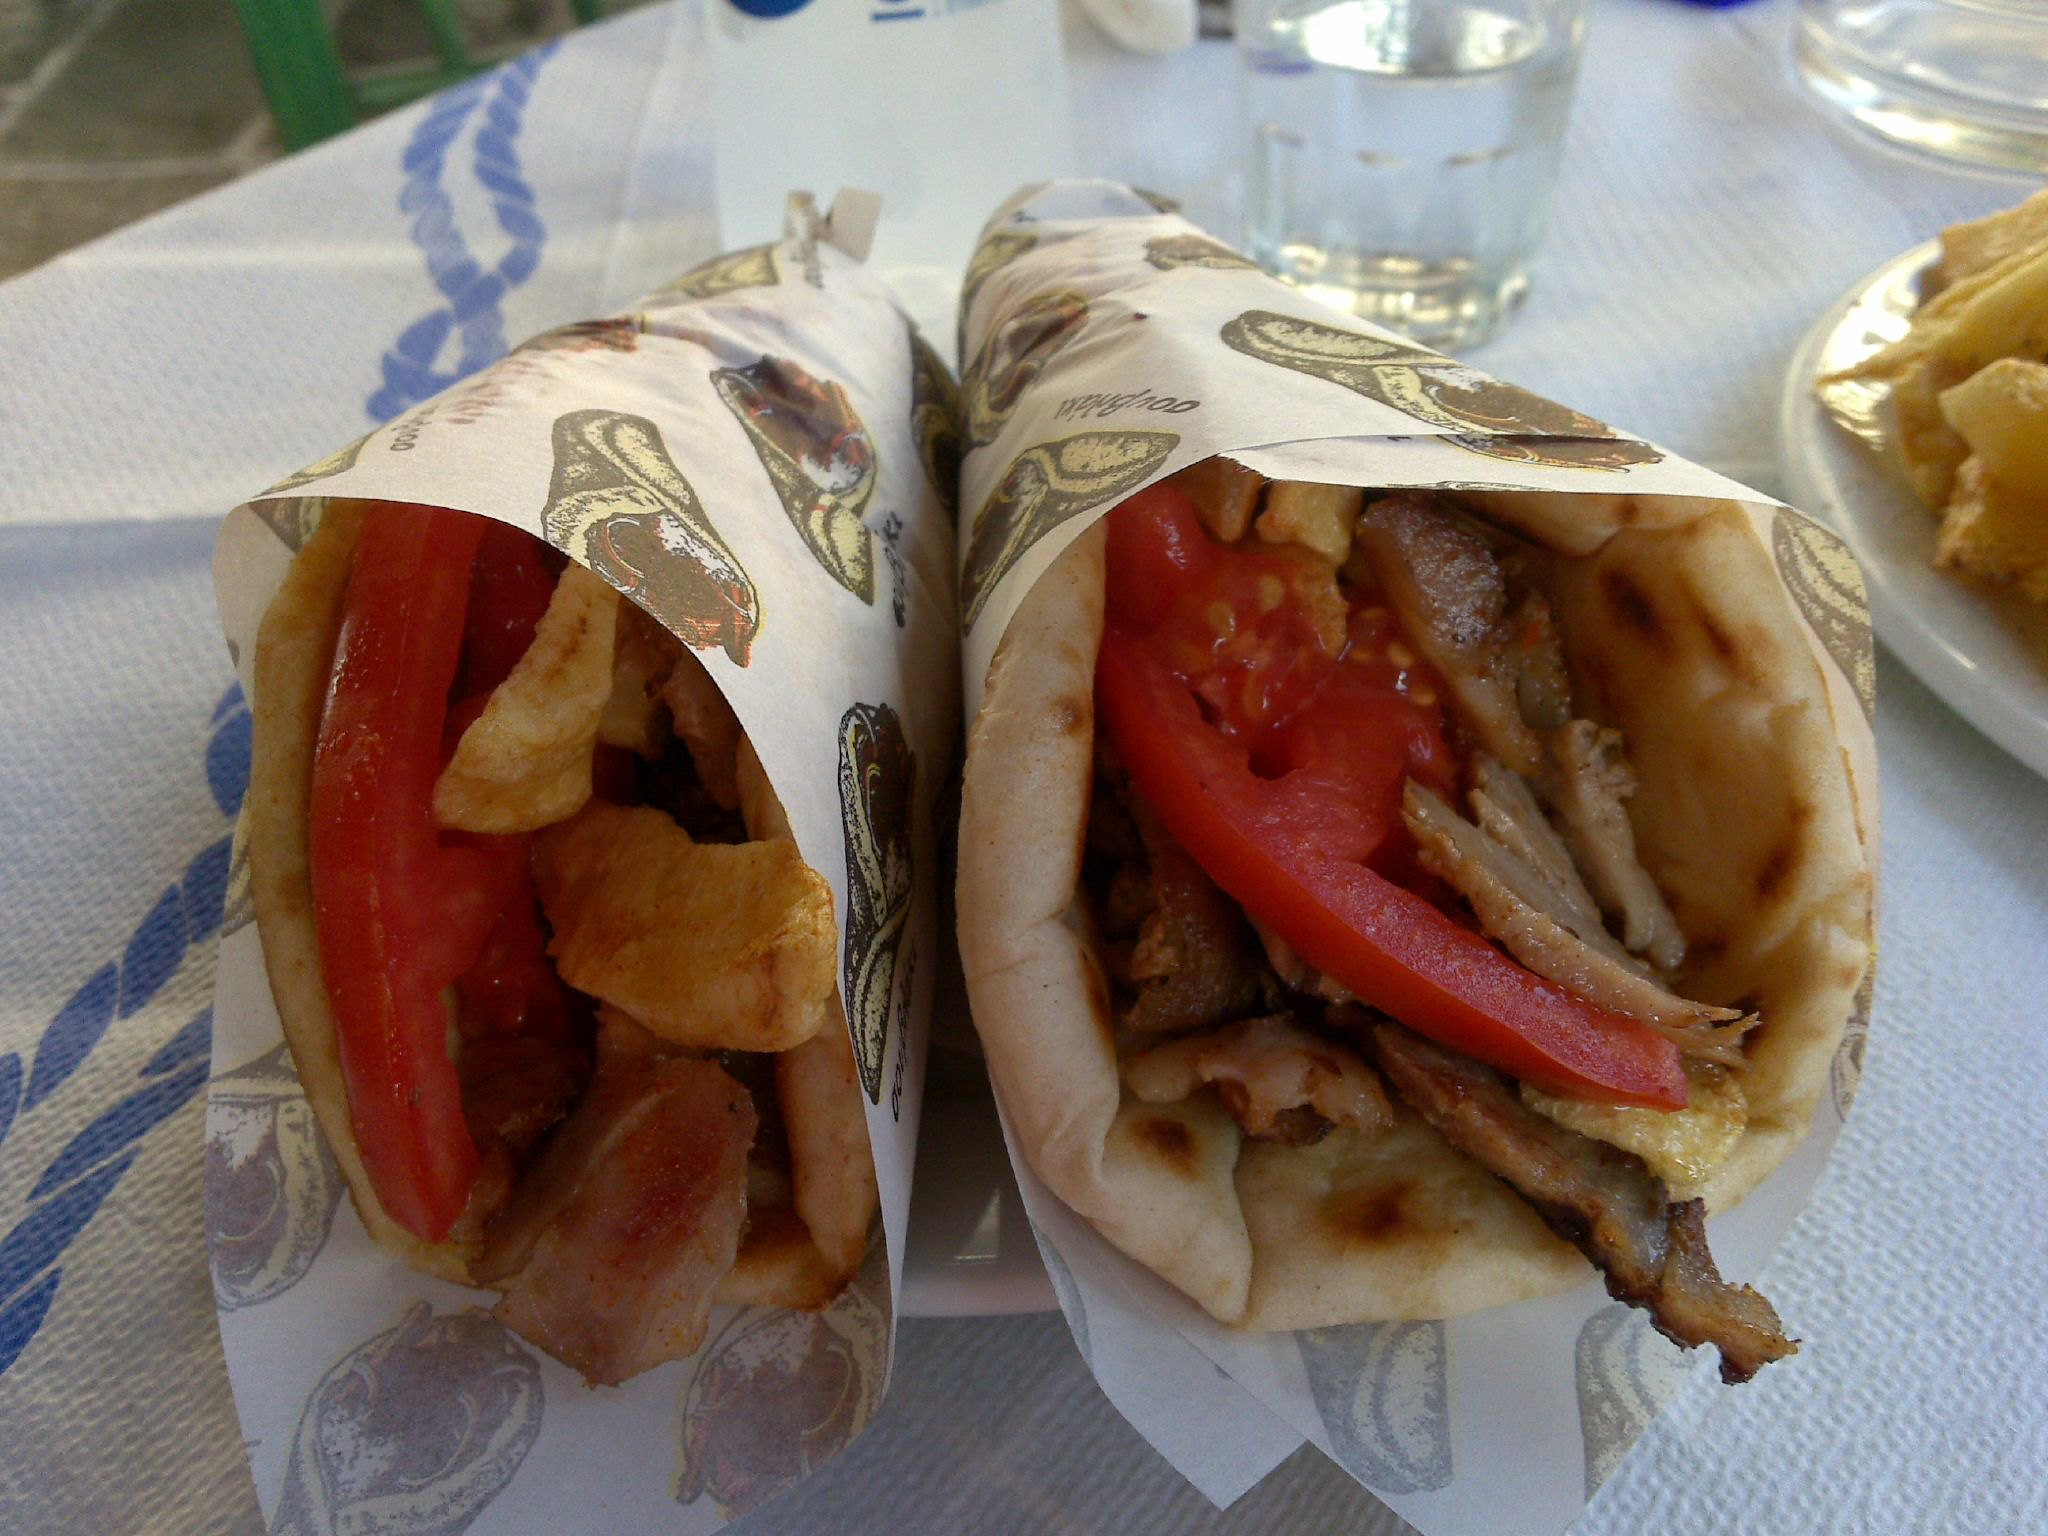 Gyro is the National Food of Greece